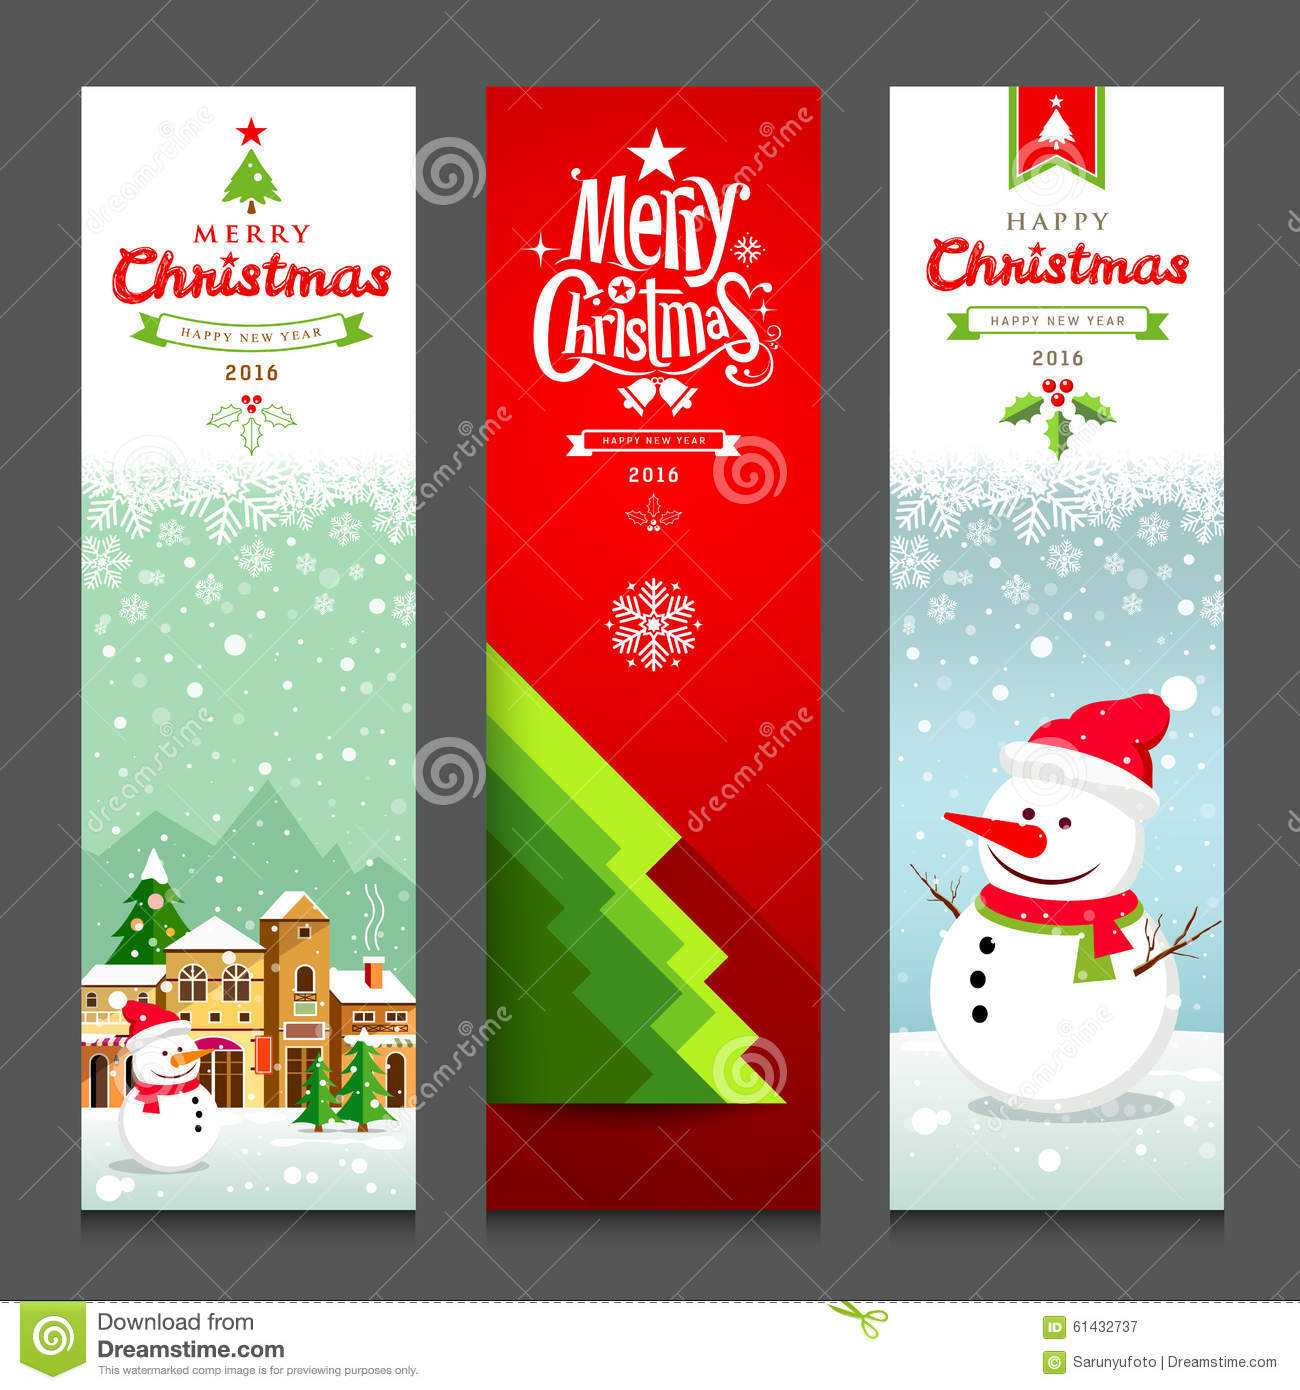 Merry christmas banners design vertical collections stock vector